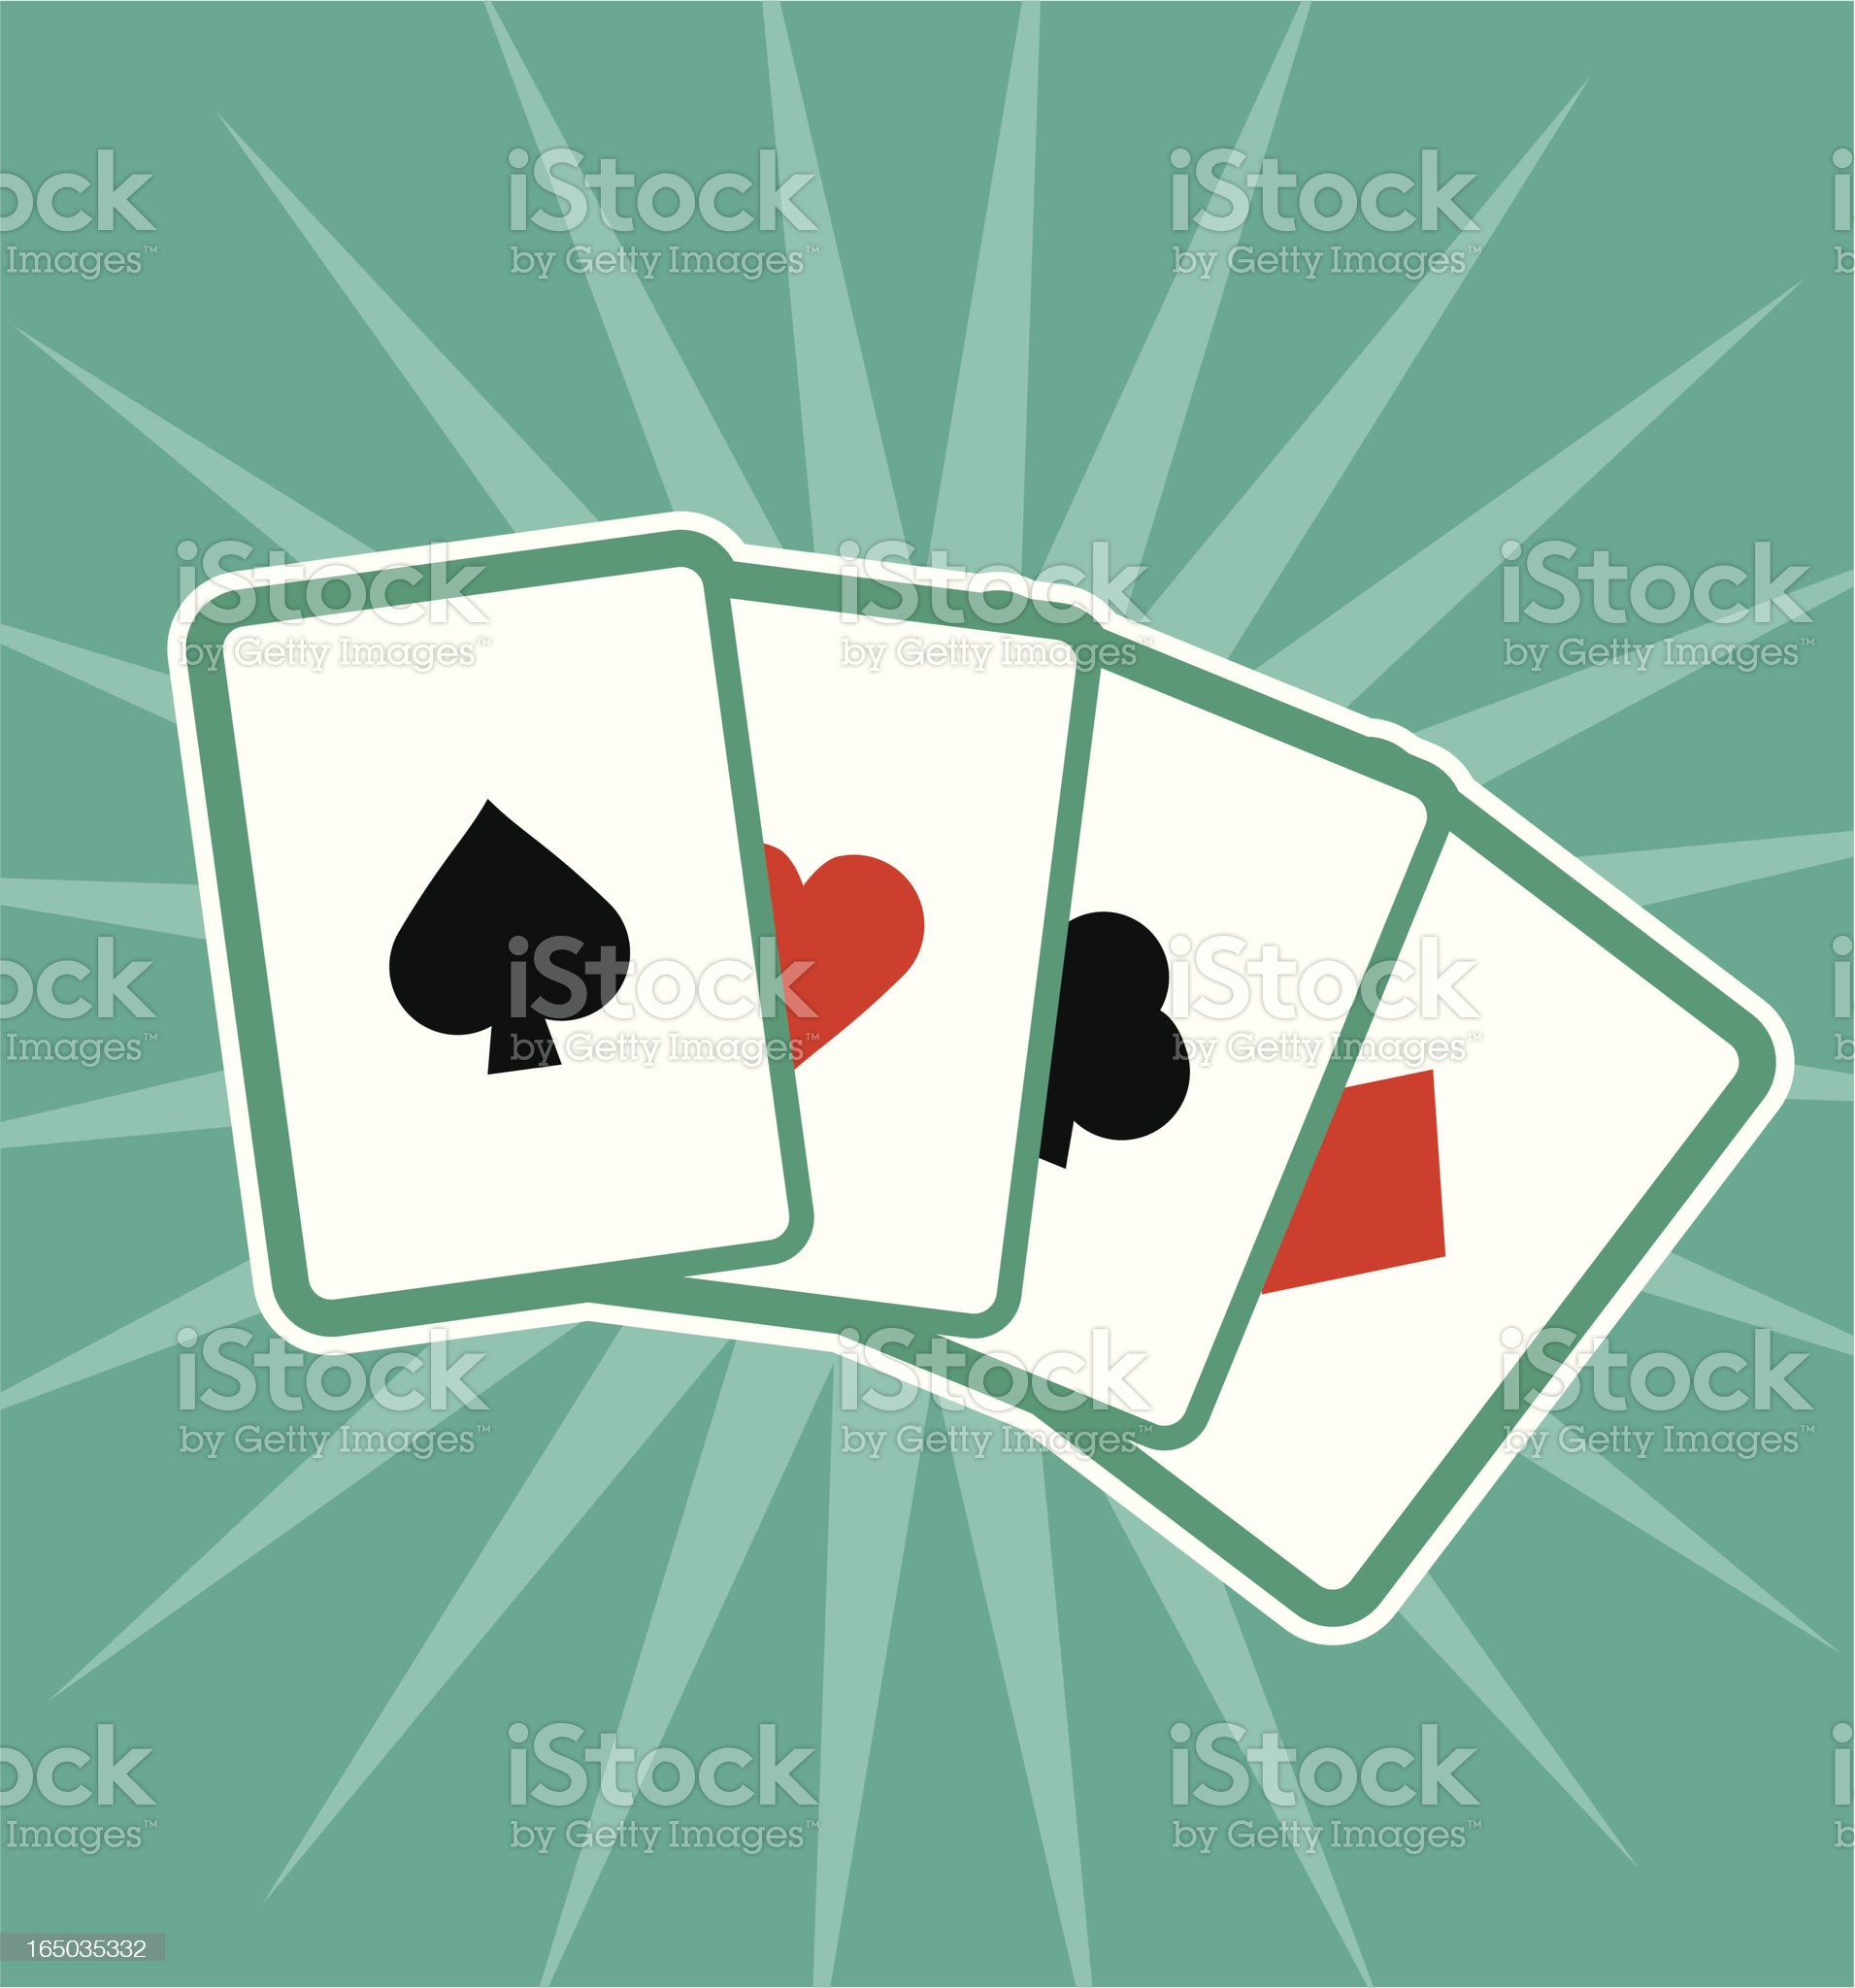 Four different playing cards showing each suit  royalty-free stock vector art